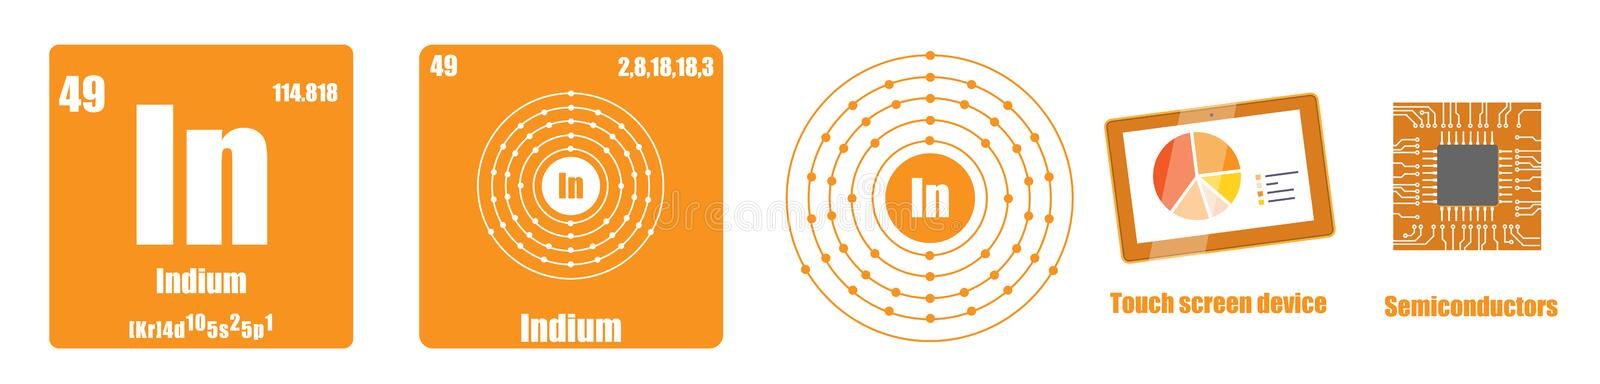 Periodic Table of element group III. Indium illustration vector flat vector illustration